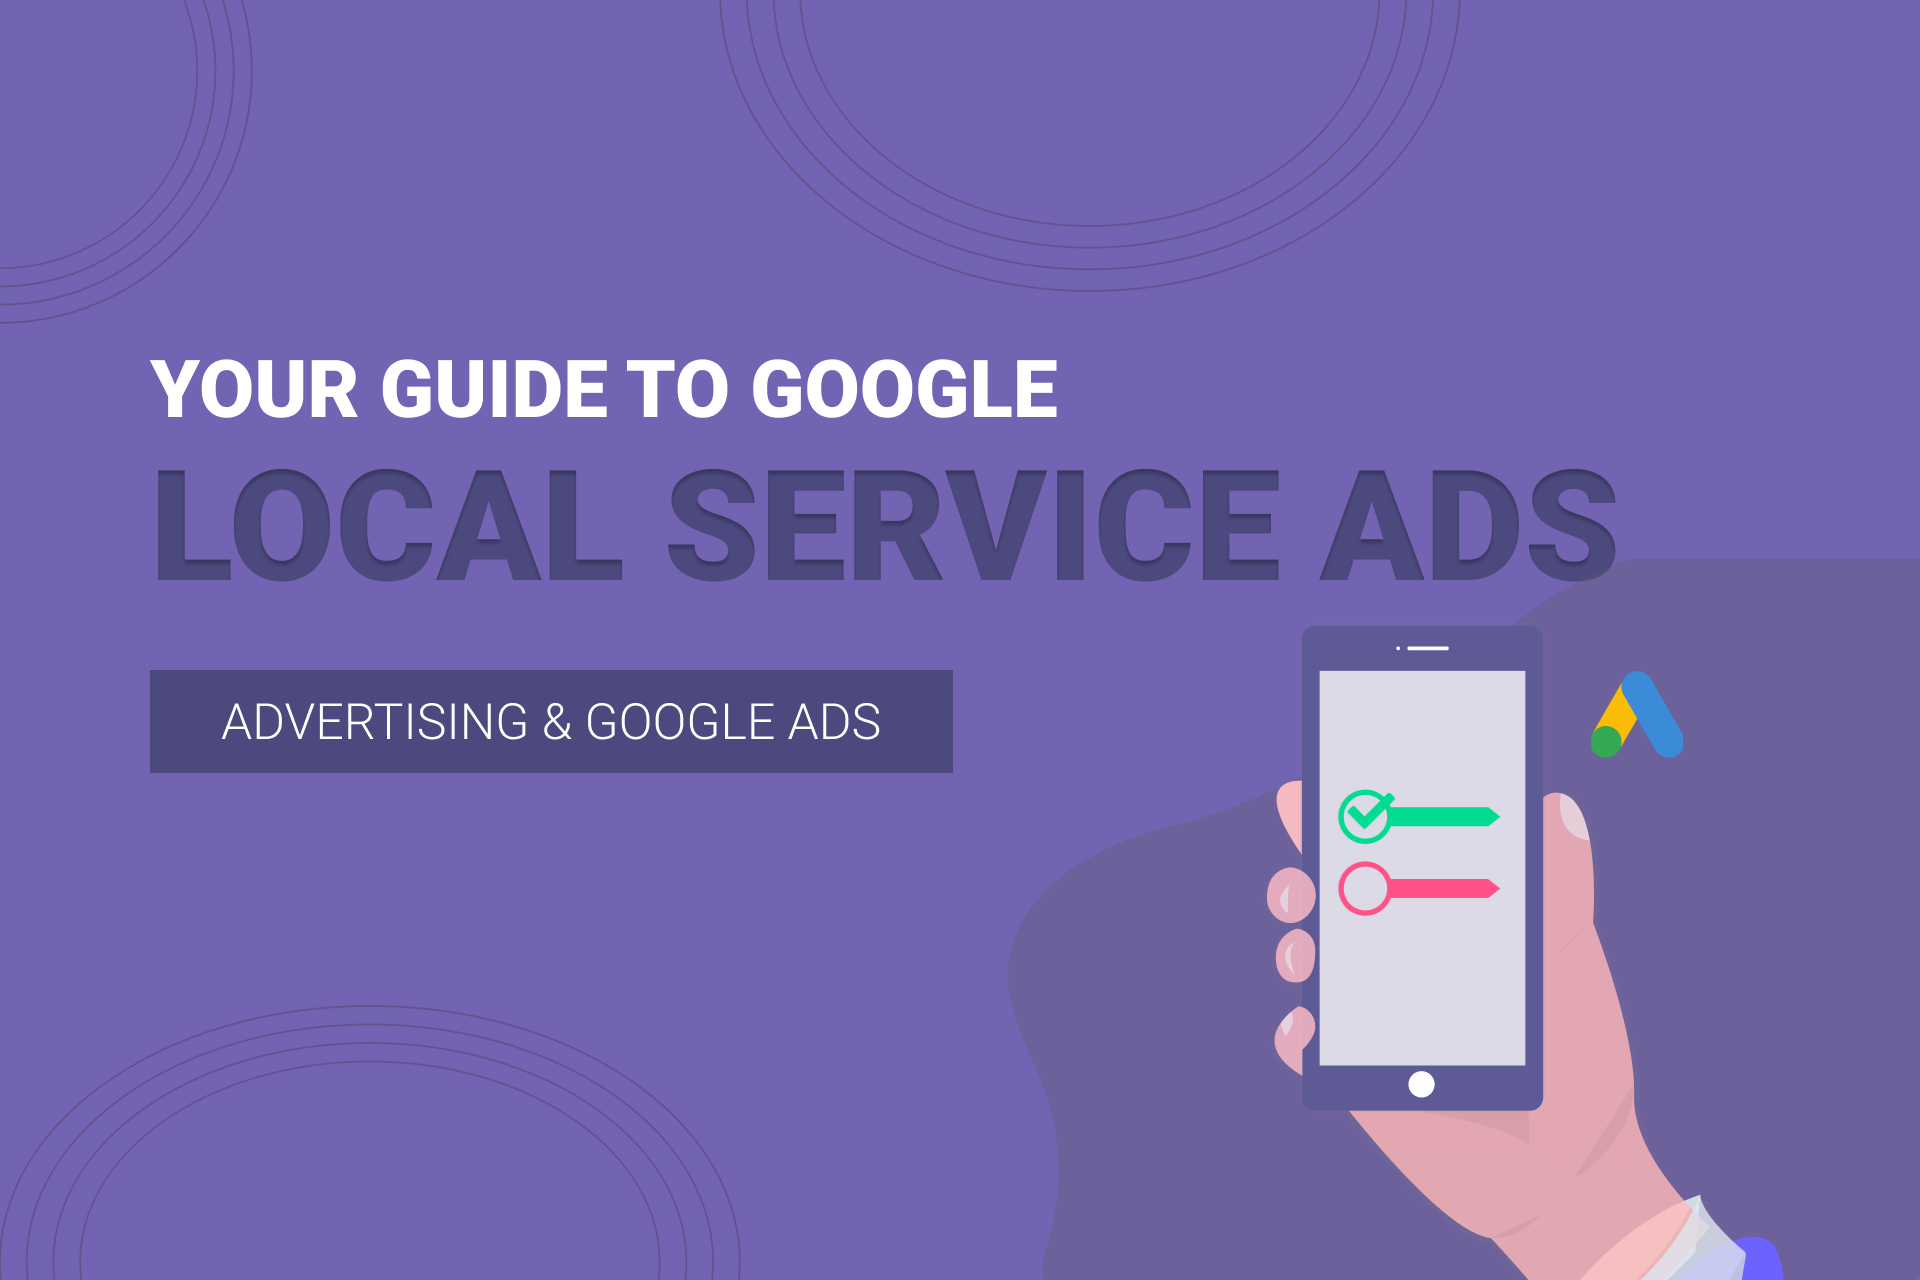 Your Guide To Google Local Service Ads In The UK